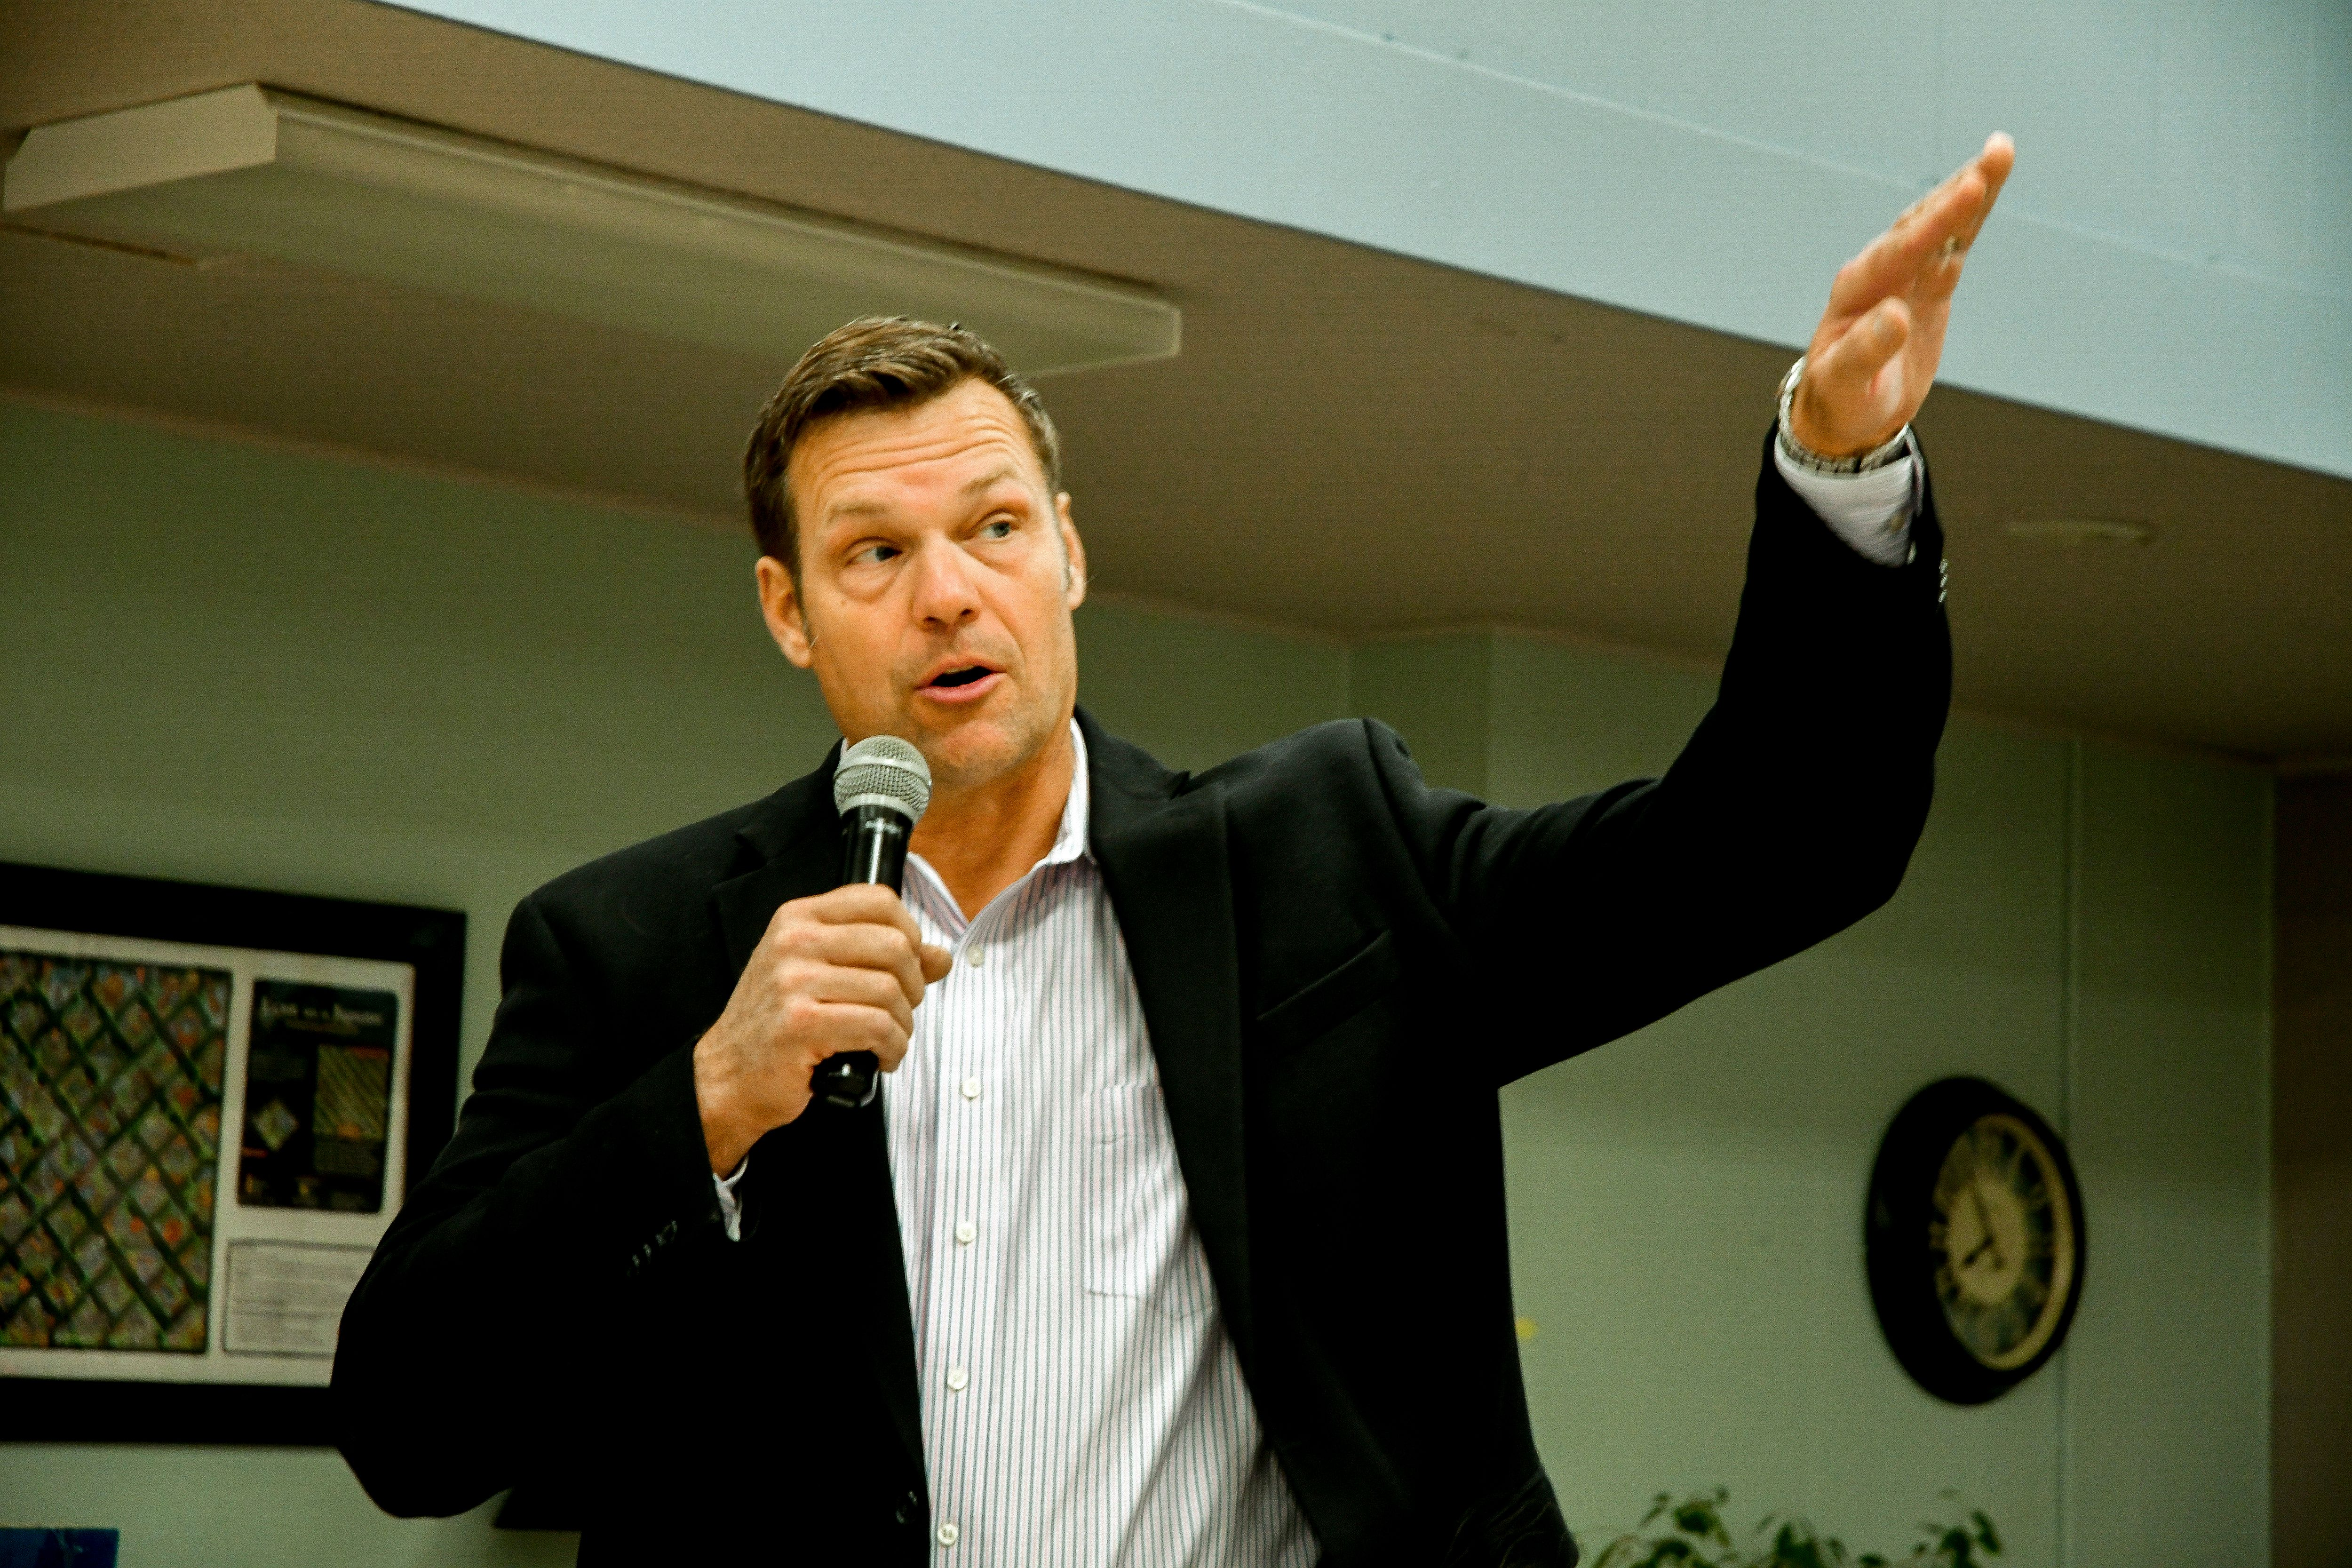 American politician Kansas Secretary of State Kris Kobach as he speaks during a fundraiser for his gubernatorial campaign at an unidentified senior citizens center, Emporia, Kansas, October 28, 2017. (Photo by Mark Reinstein/Corbis via Getty Images)